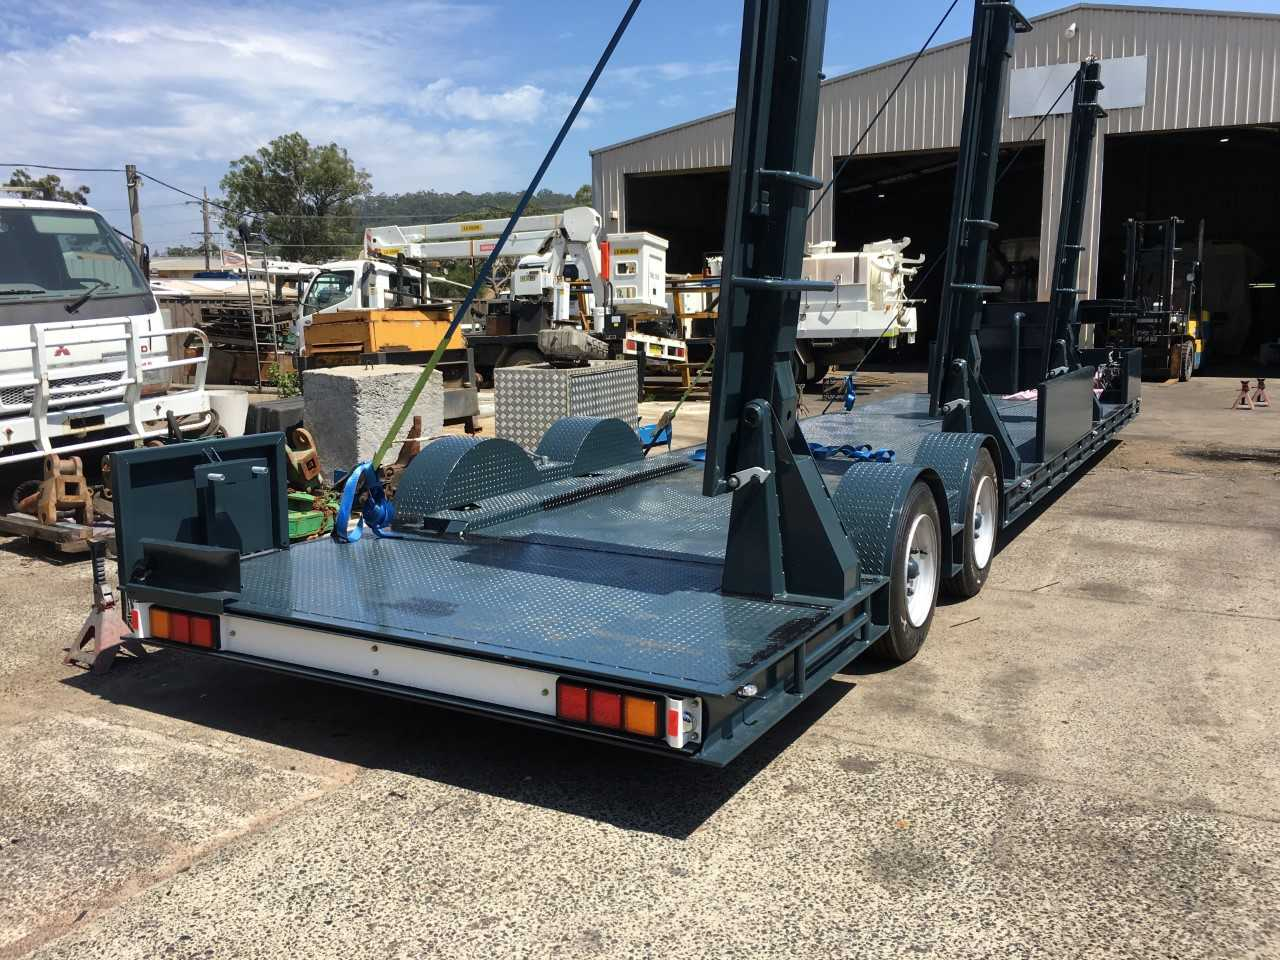 Swimming pool trailer carrier